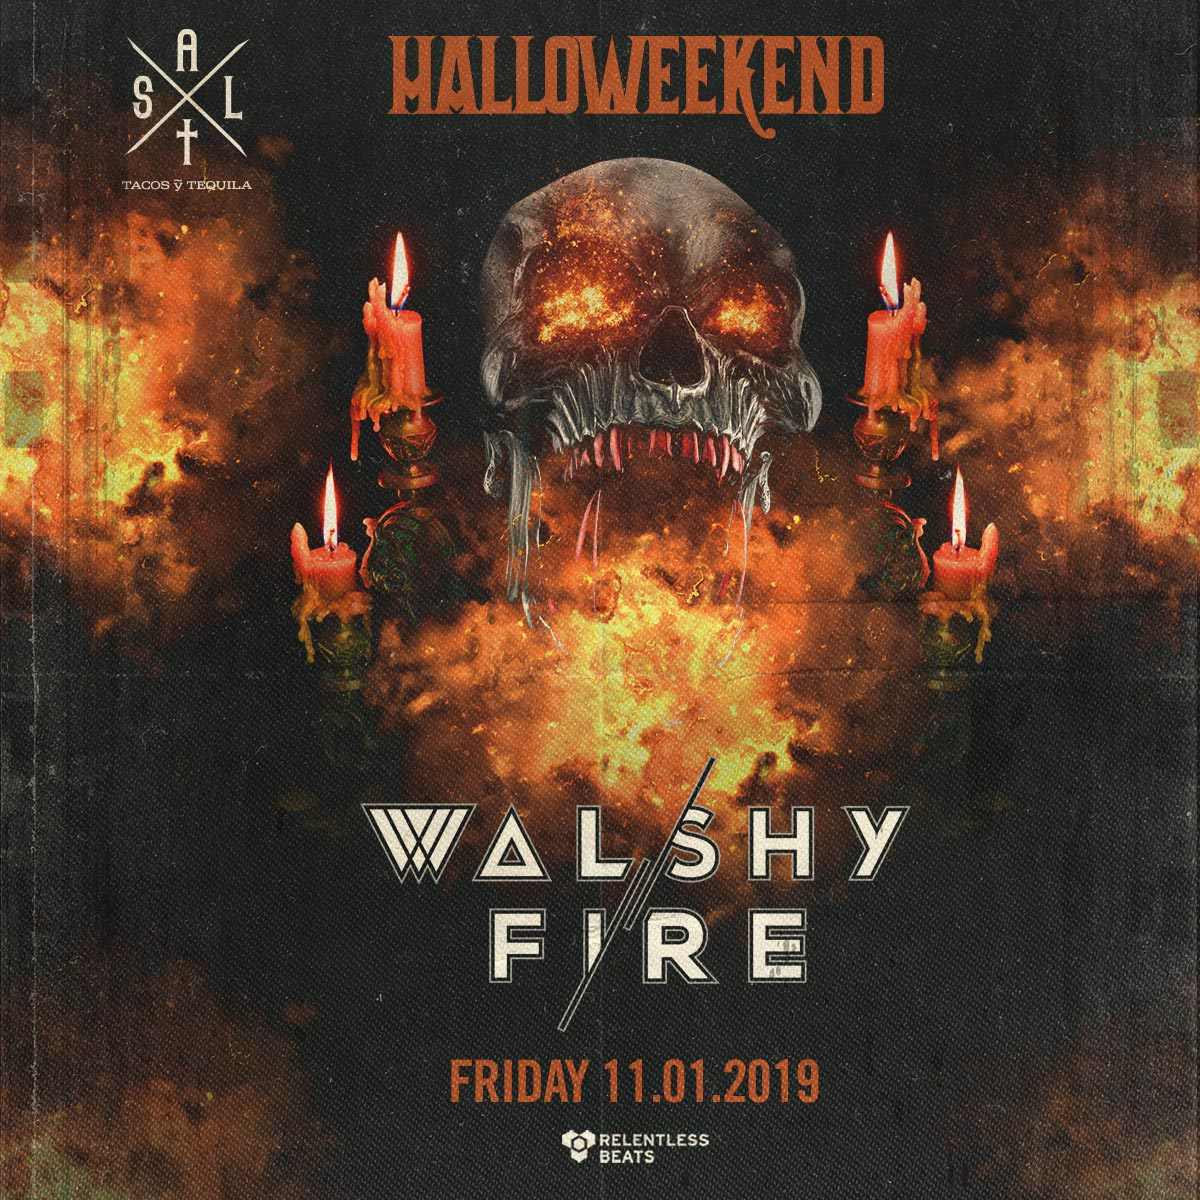 Flyer for Walshy Fire